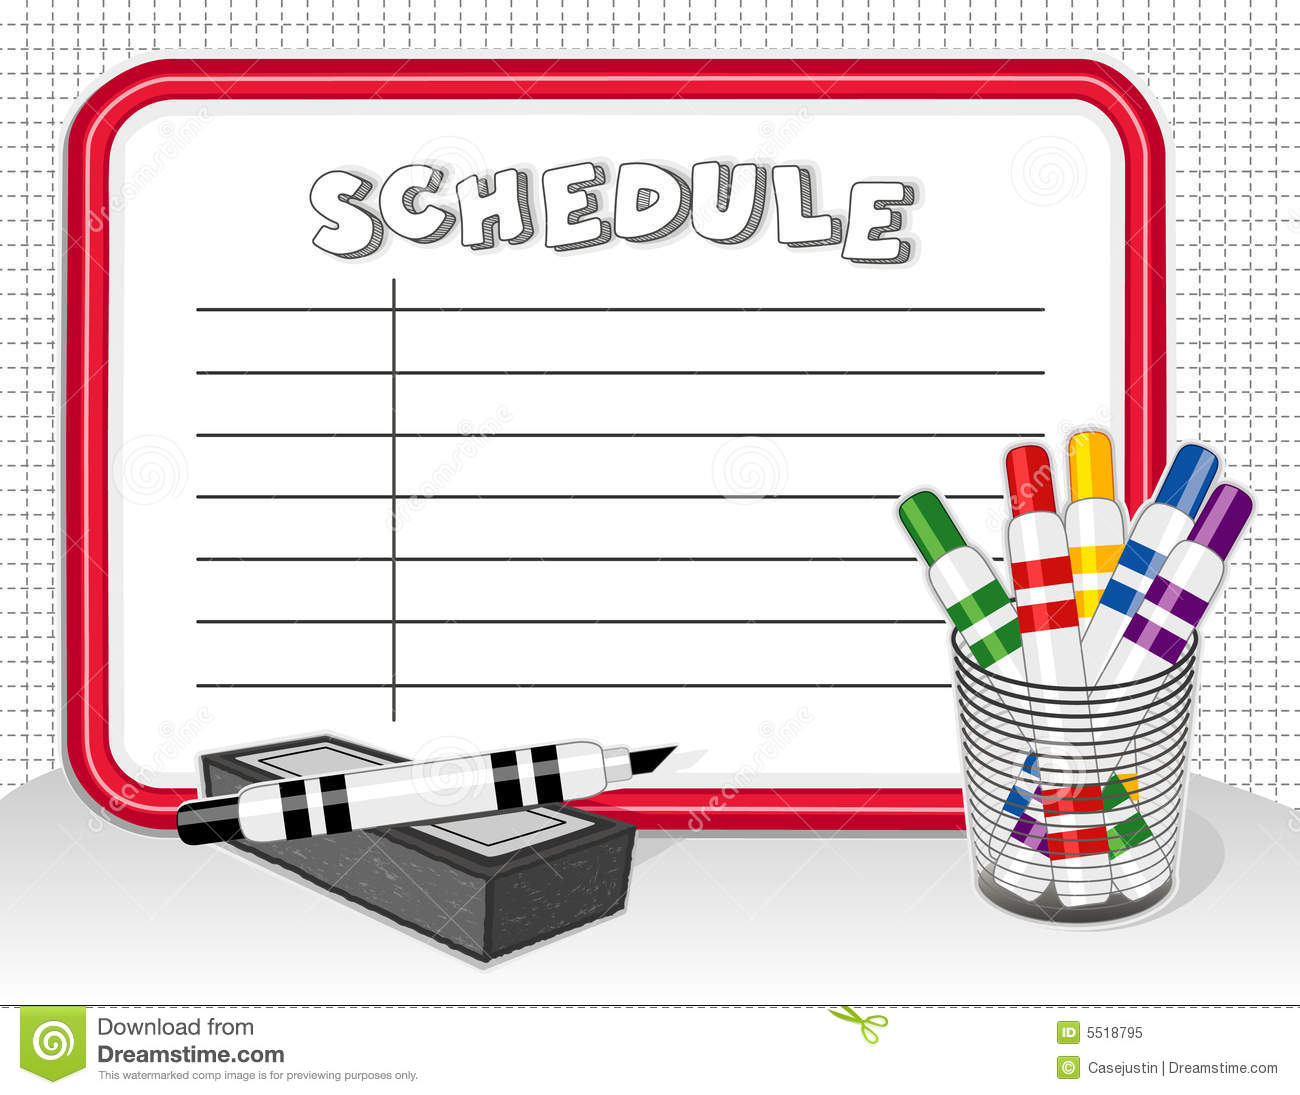 Image result for clipart schedule